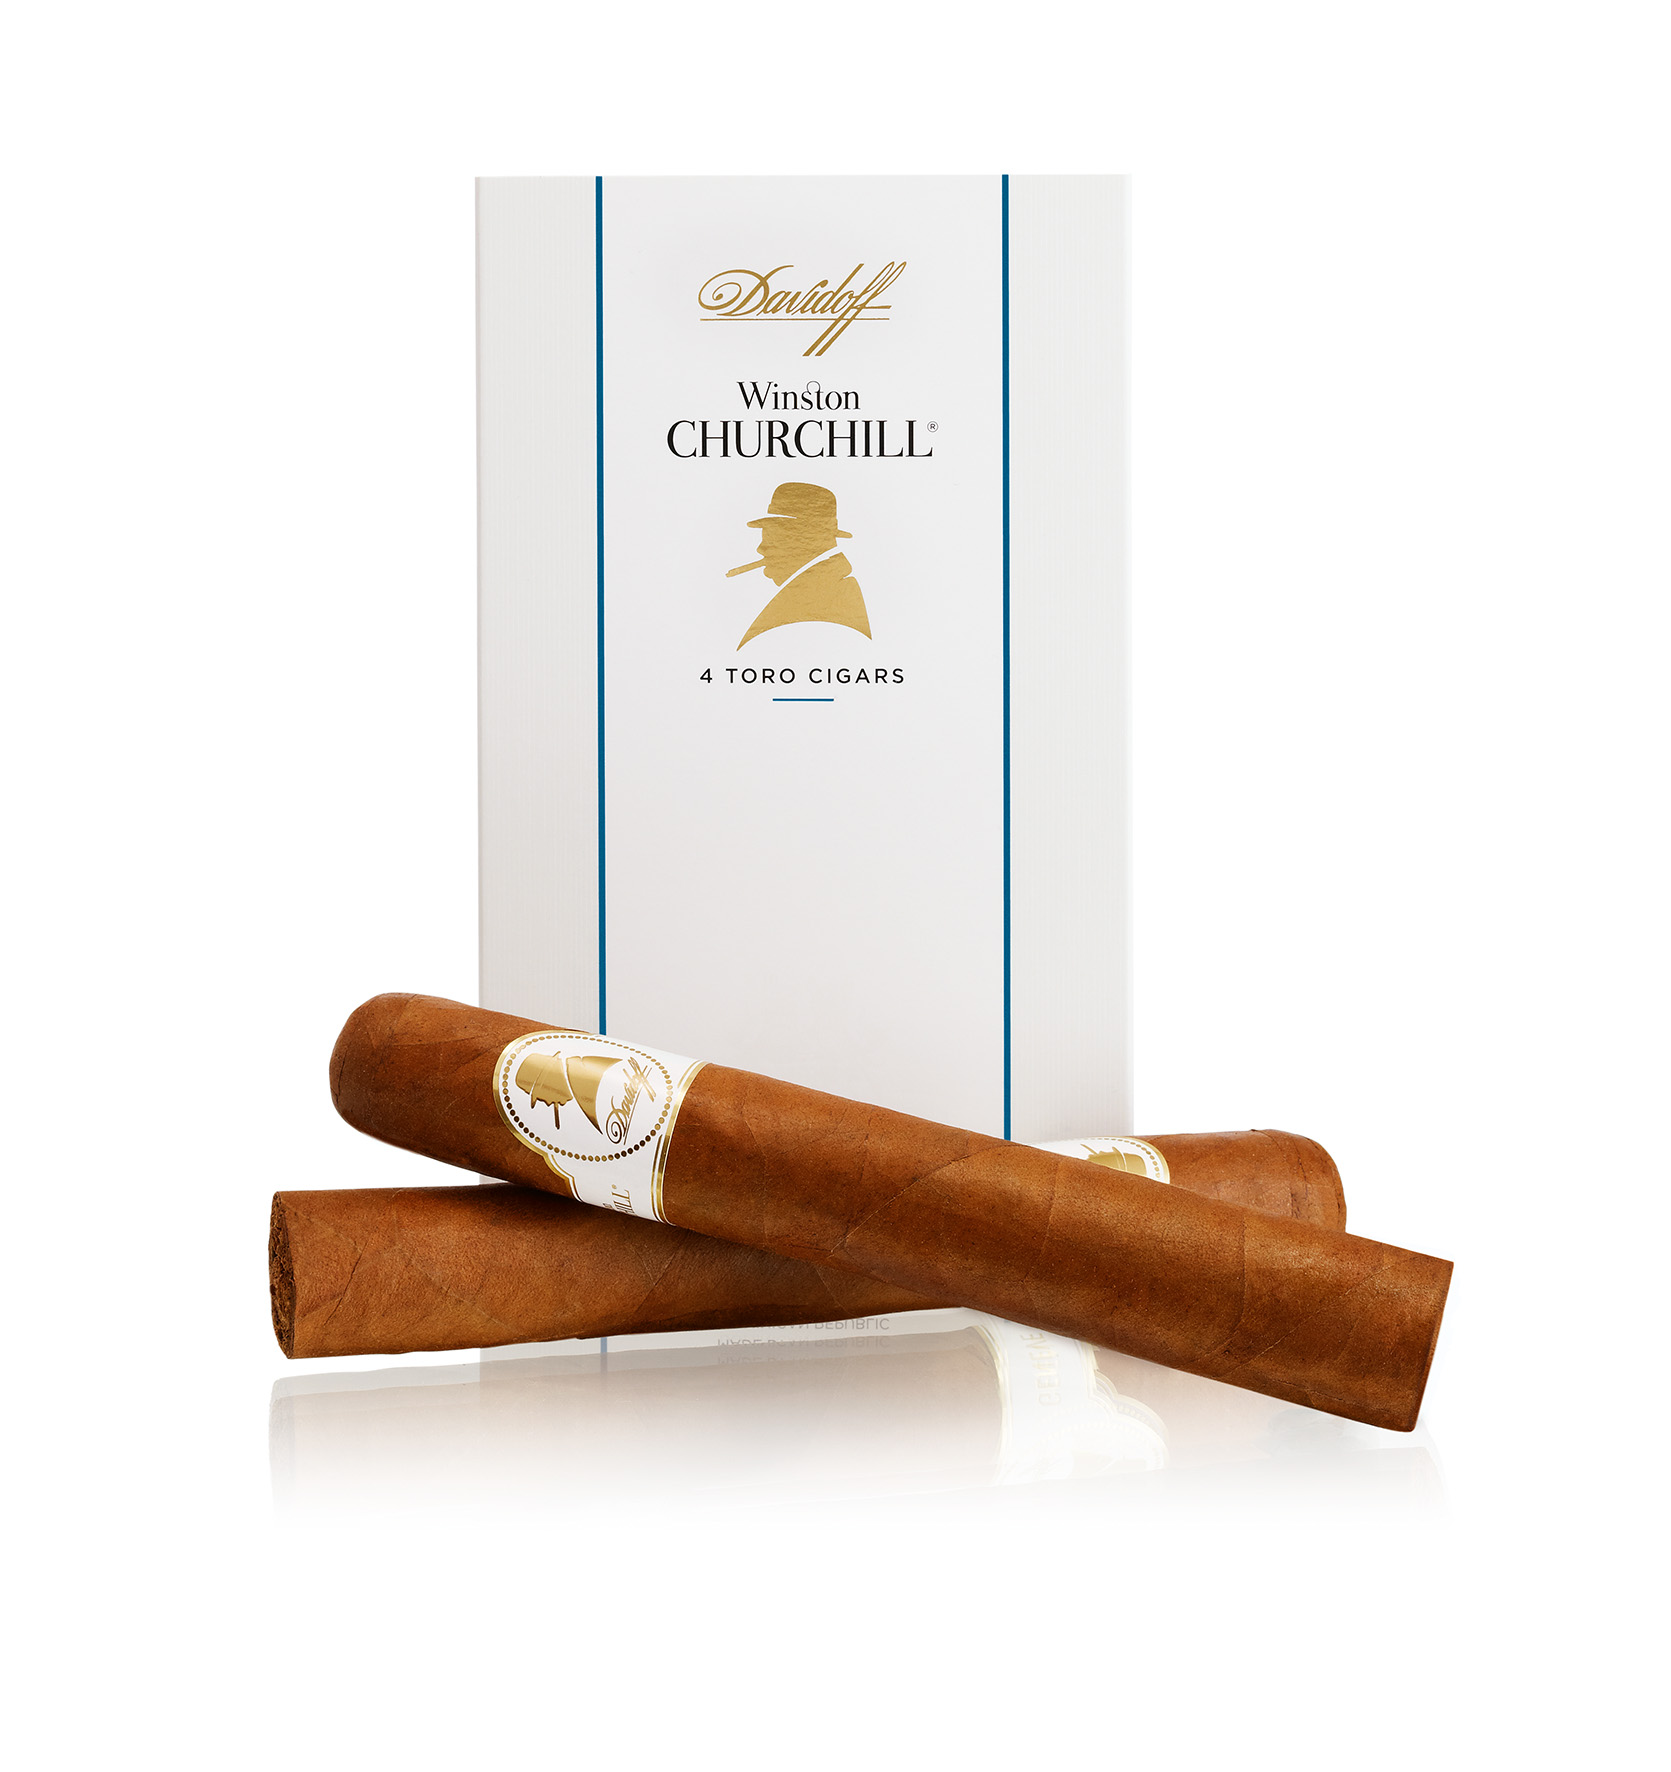 Photo: Davidoff's Winston Churchill Cigars redesign, 2015